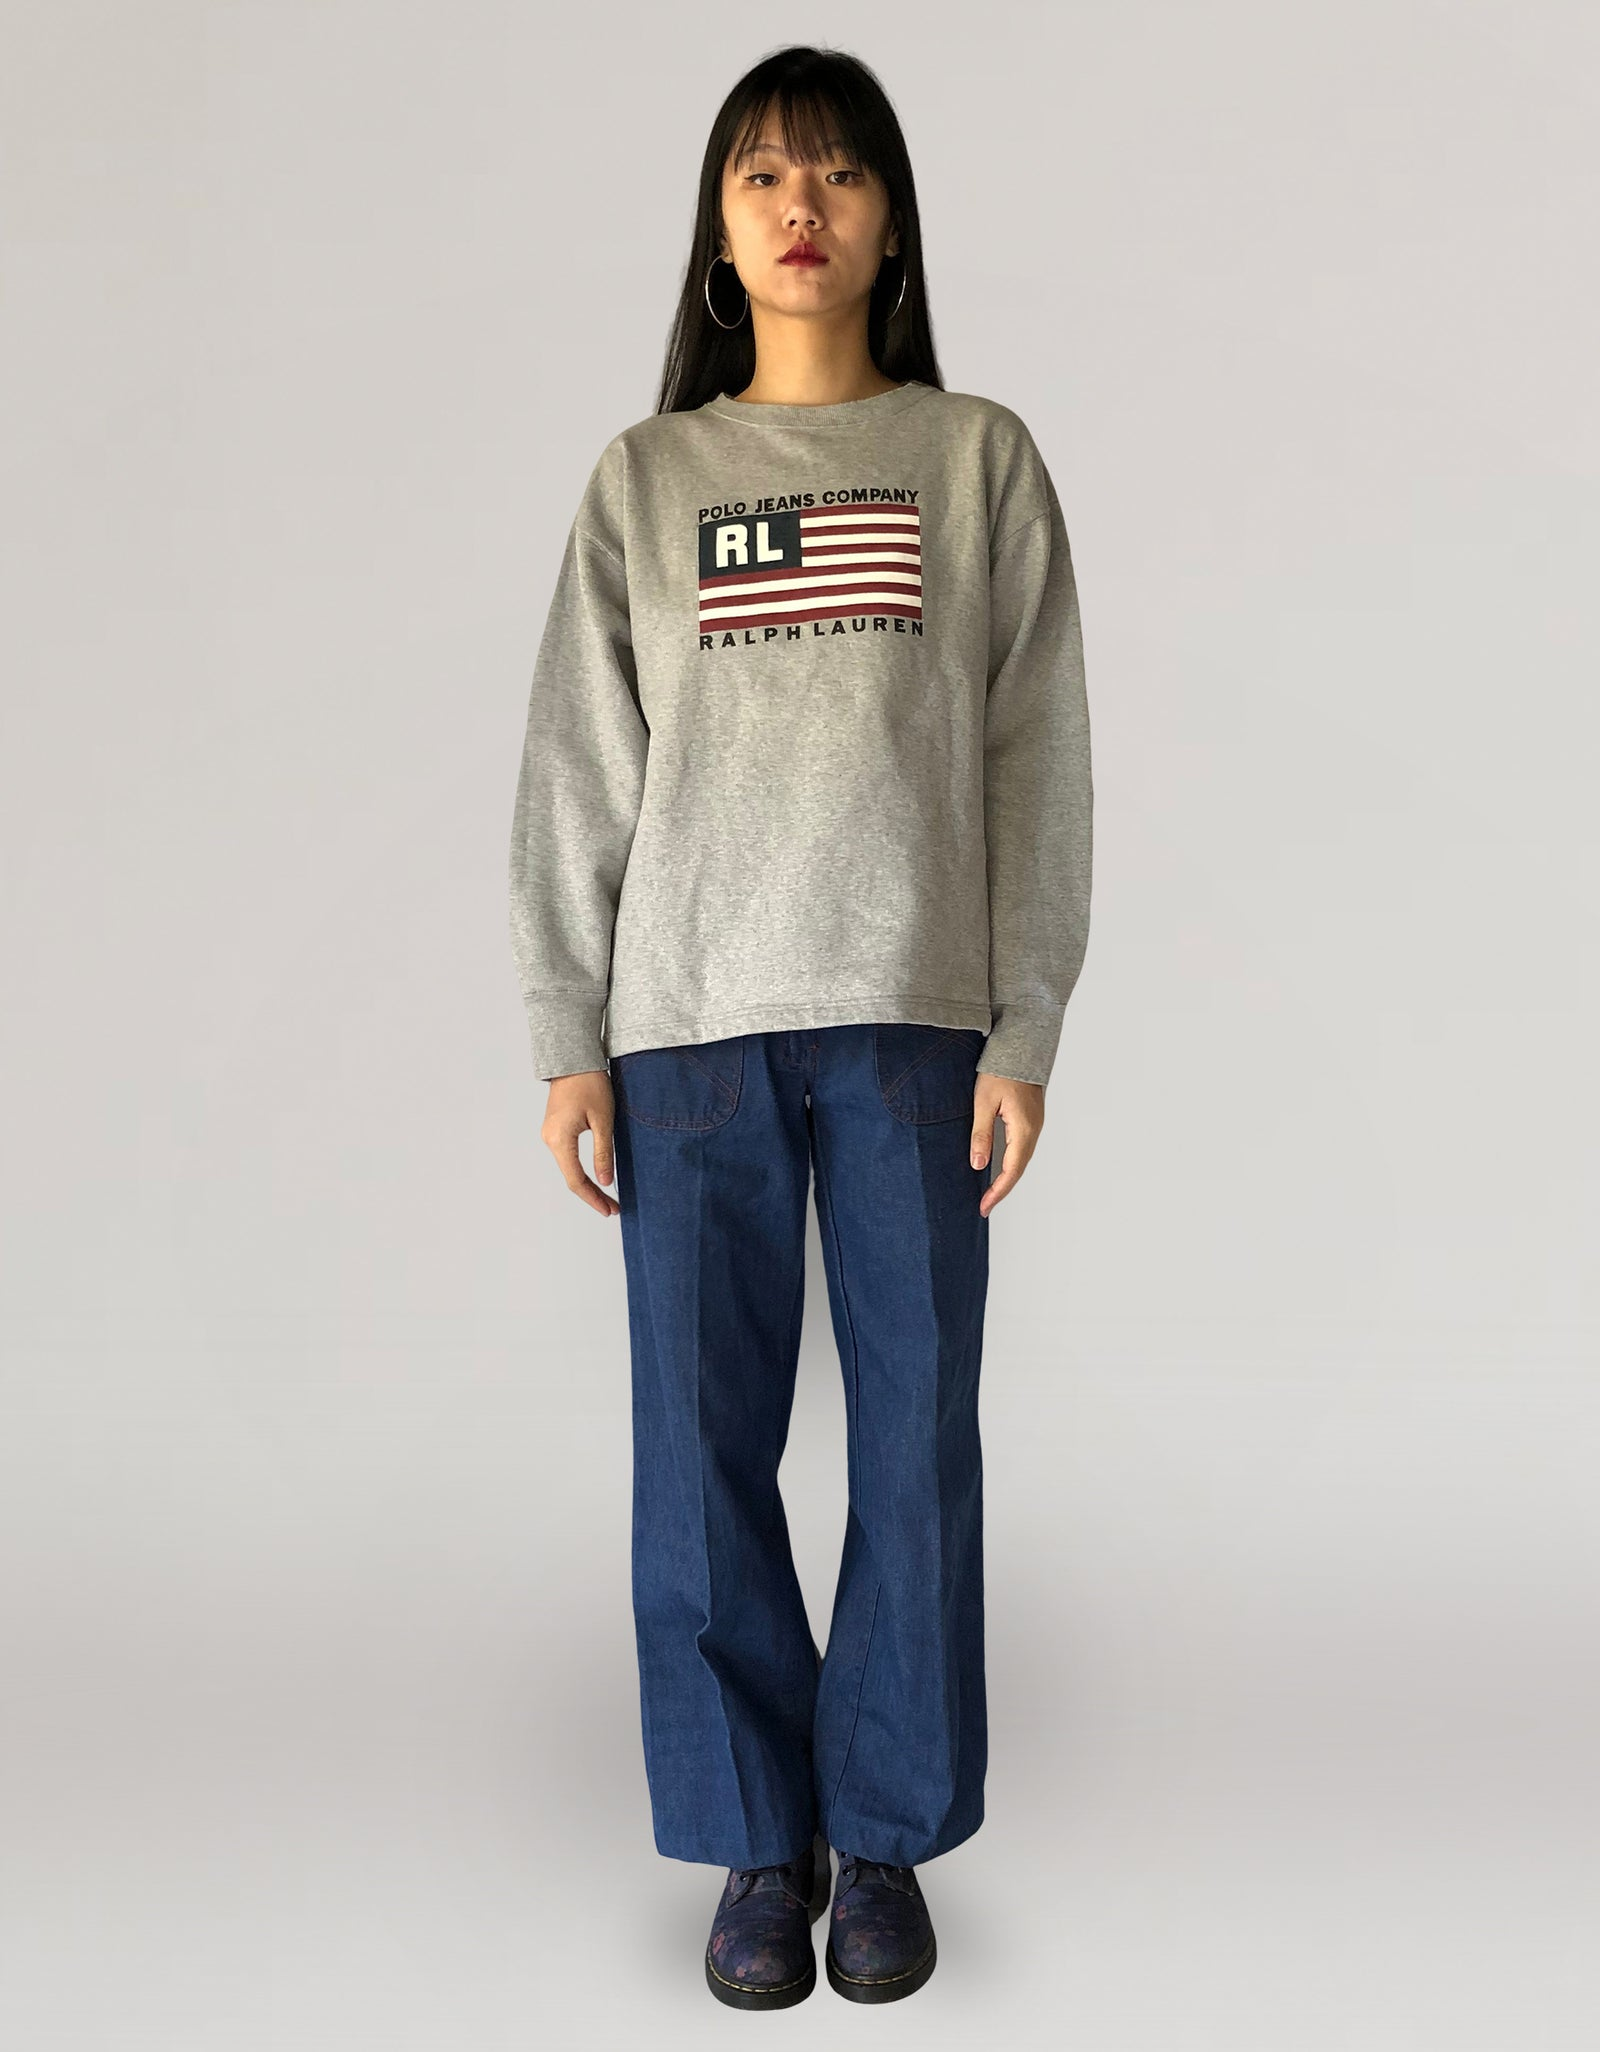 US sweatshirt